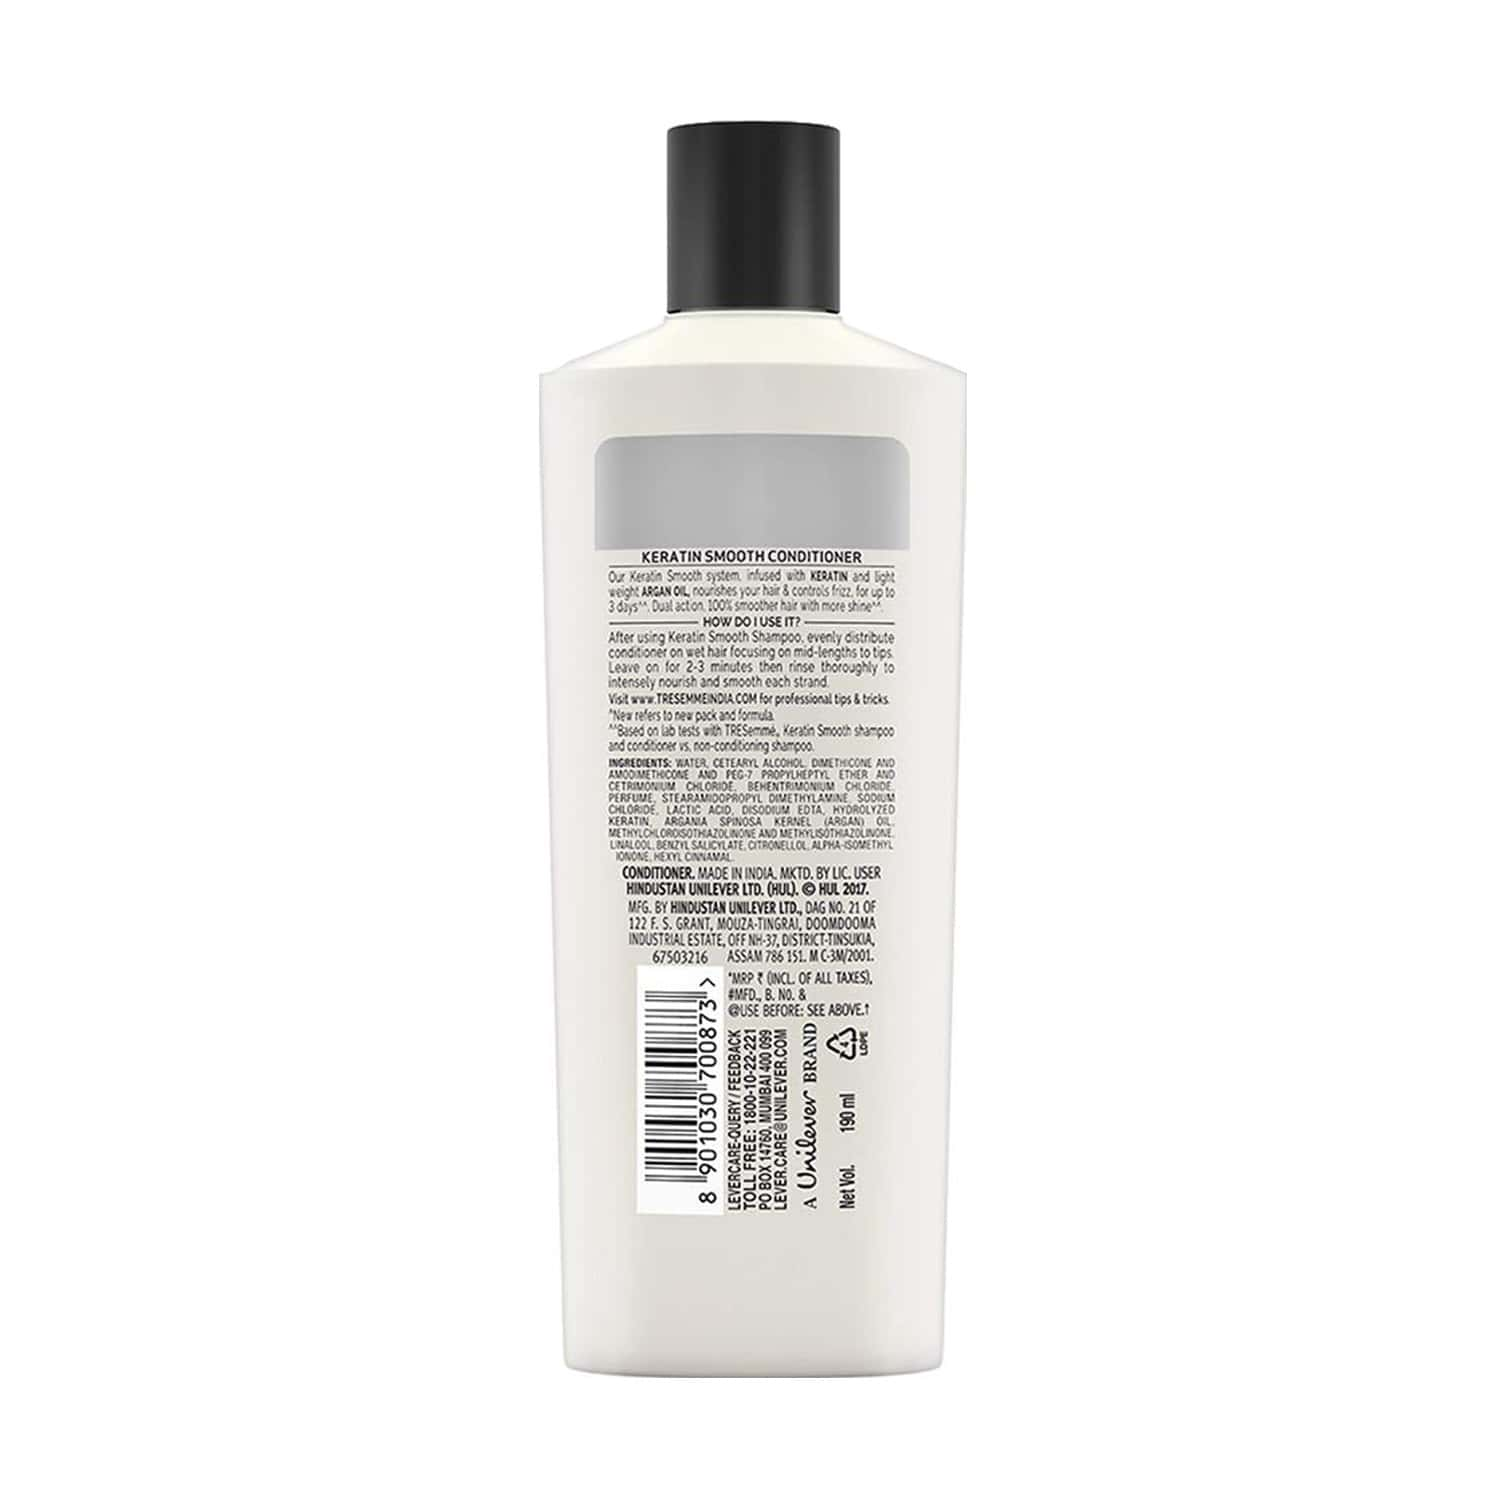 Tresemme Conditioner, Keratin Smooth 80 Ml